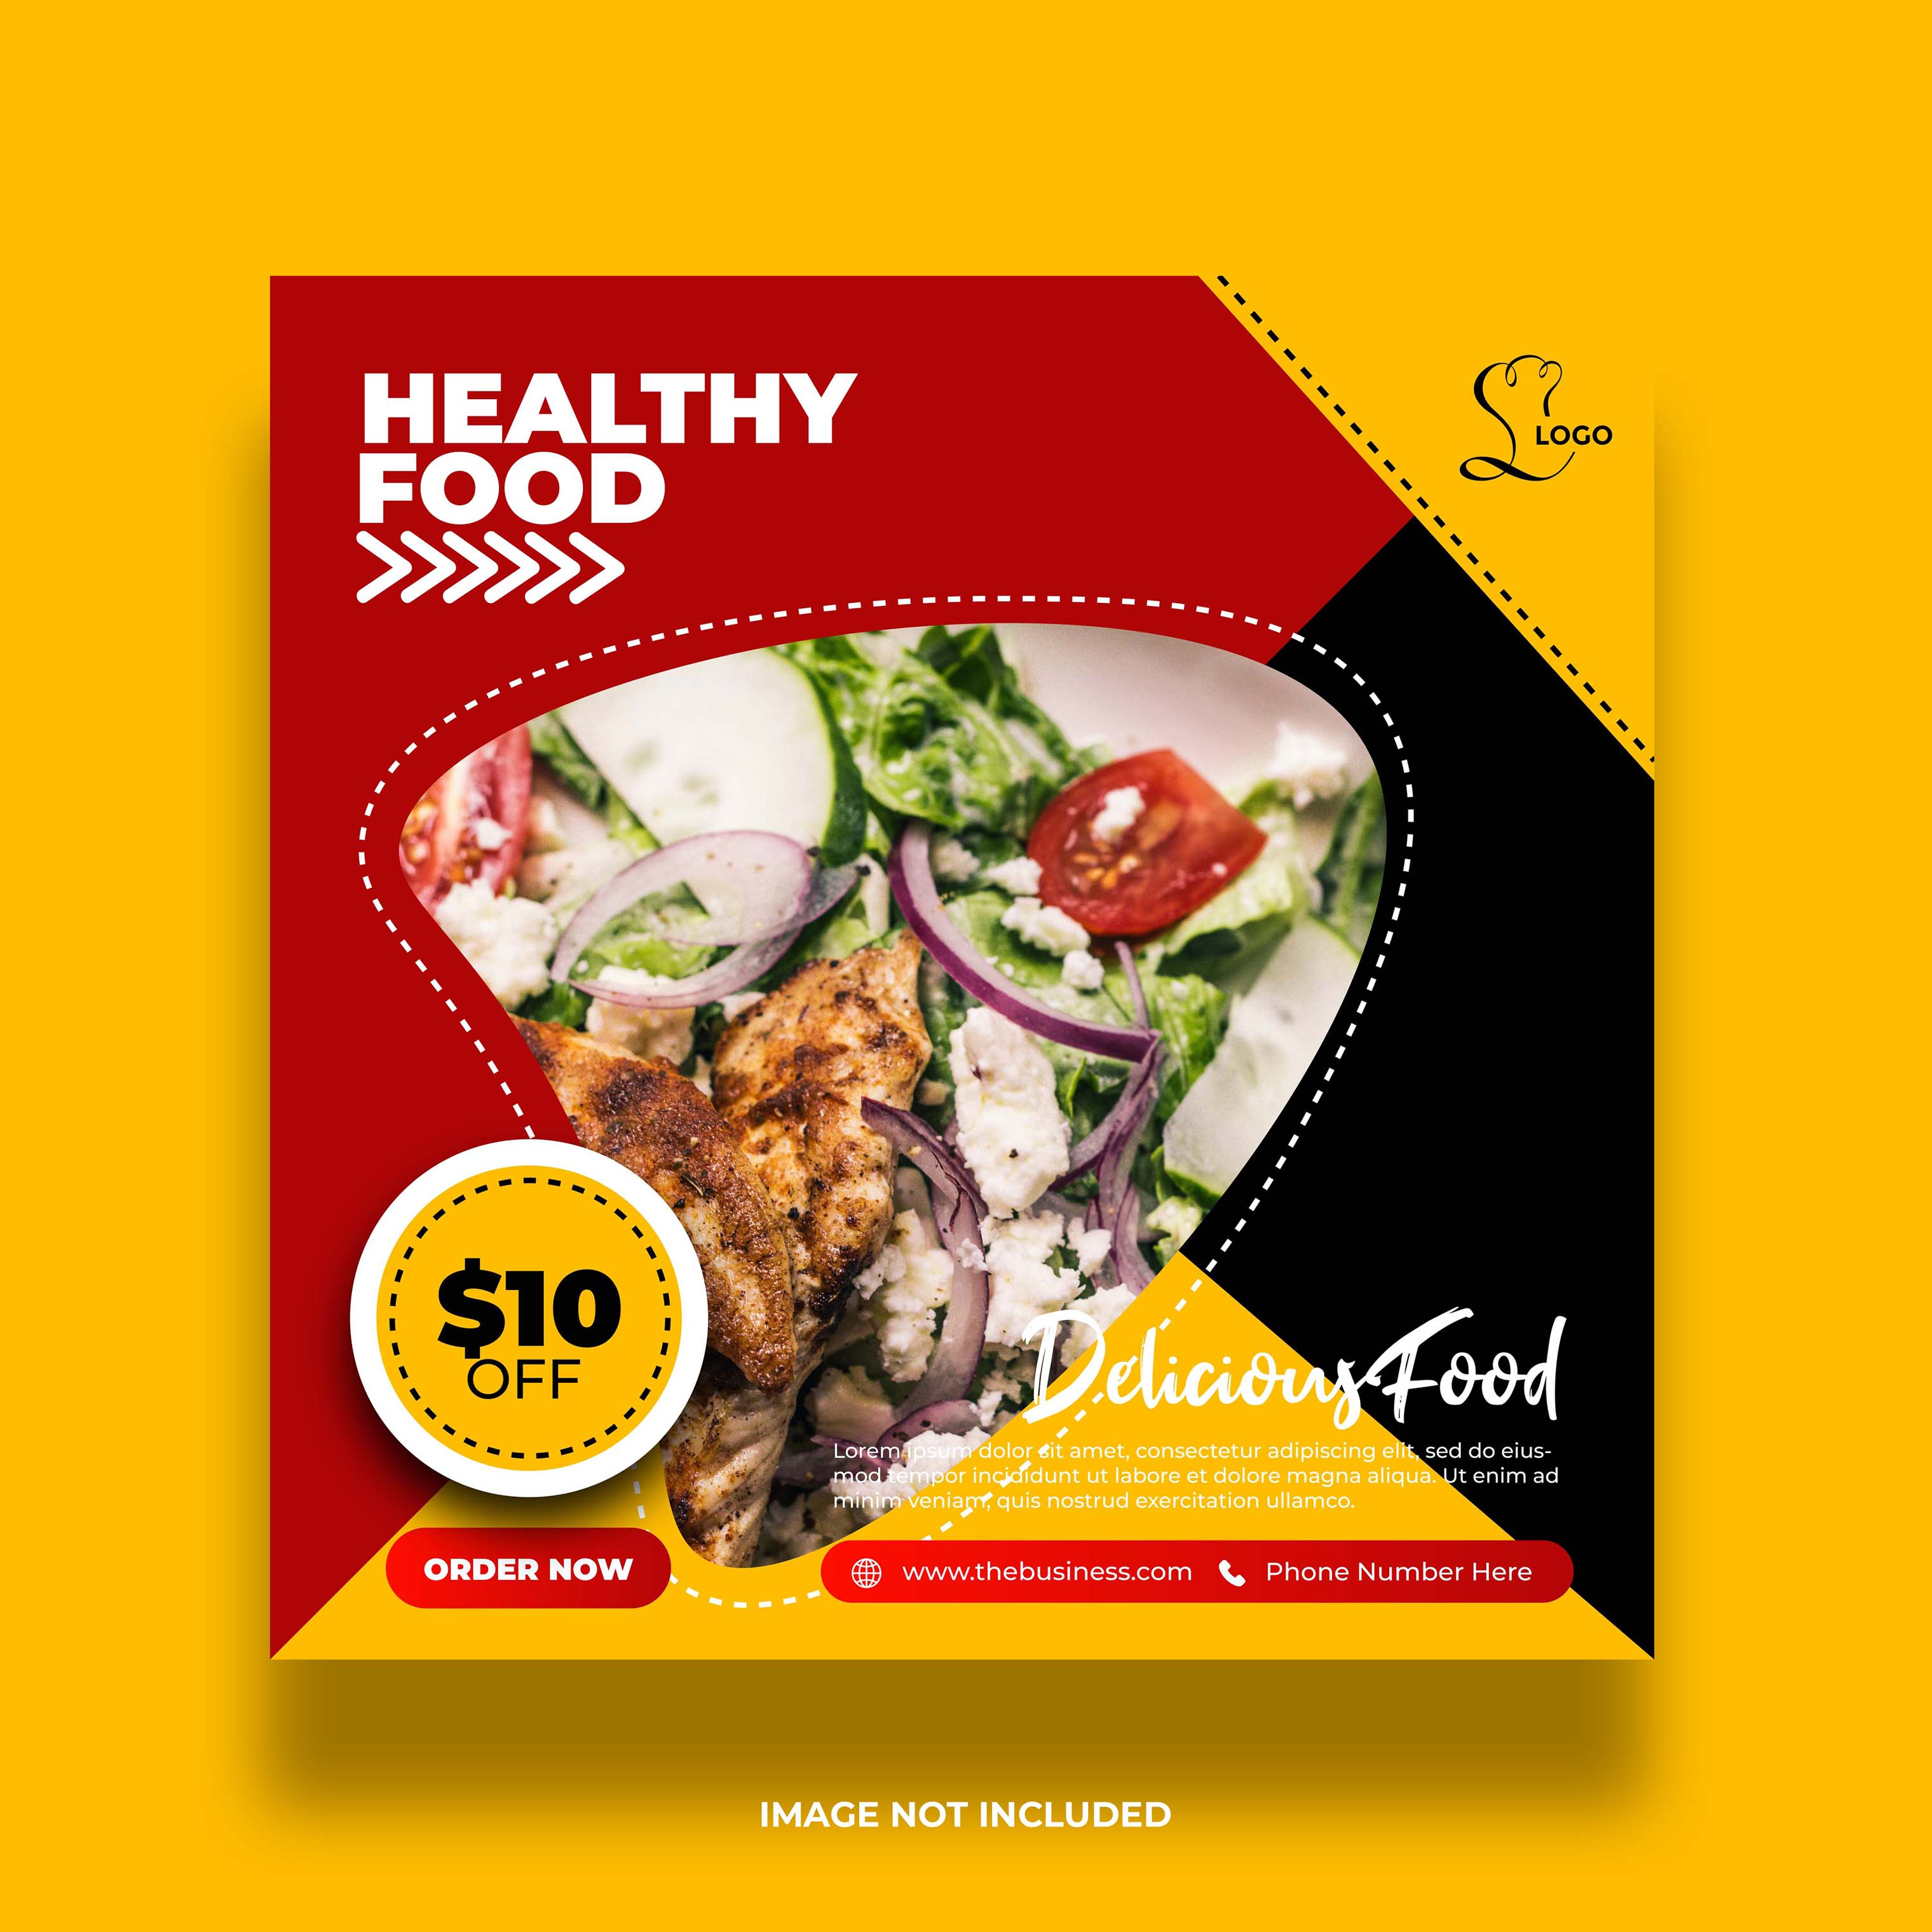 Red Yellow And Black Restaurant Banner For Social Media Post Download Free Vectors Clipart Graphics Vector Art